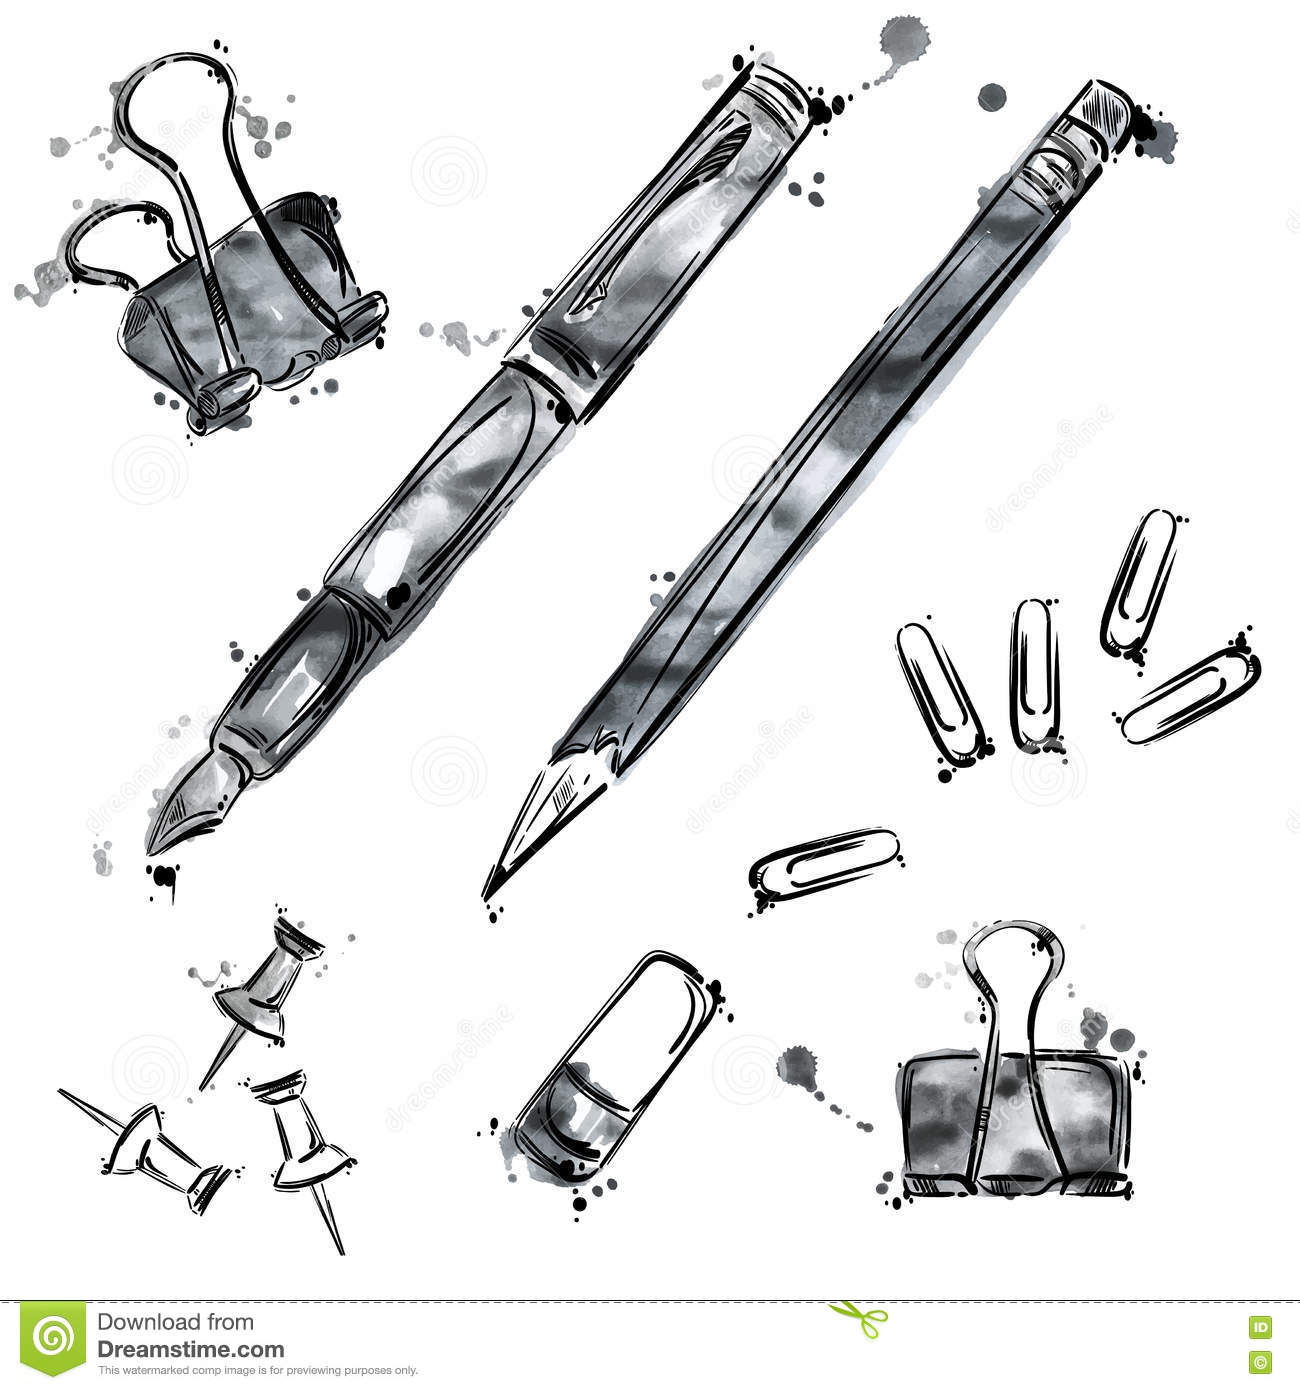 Vector set of tools. Isolate on white background.